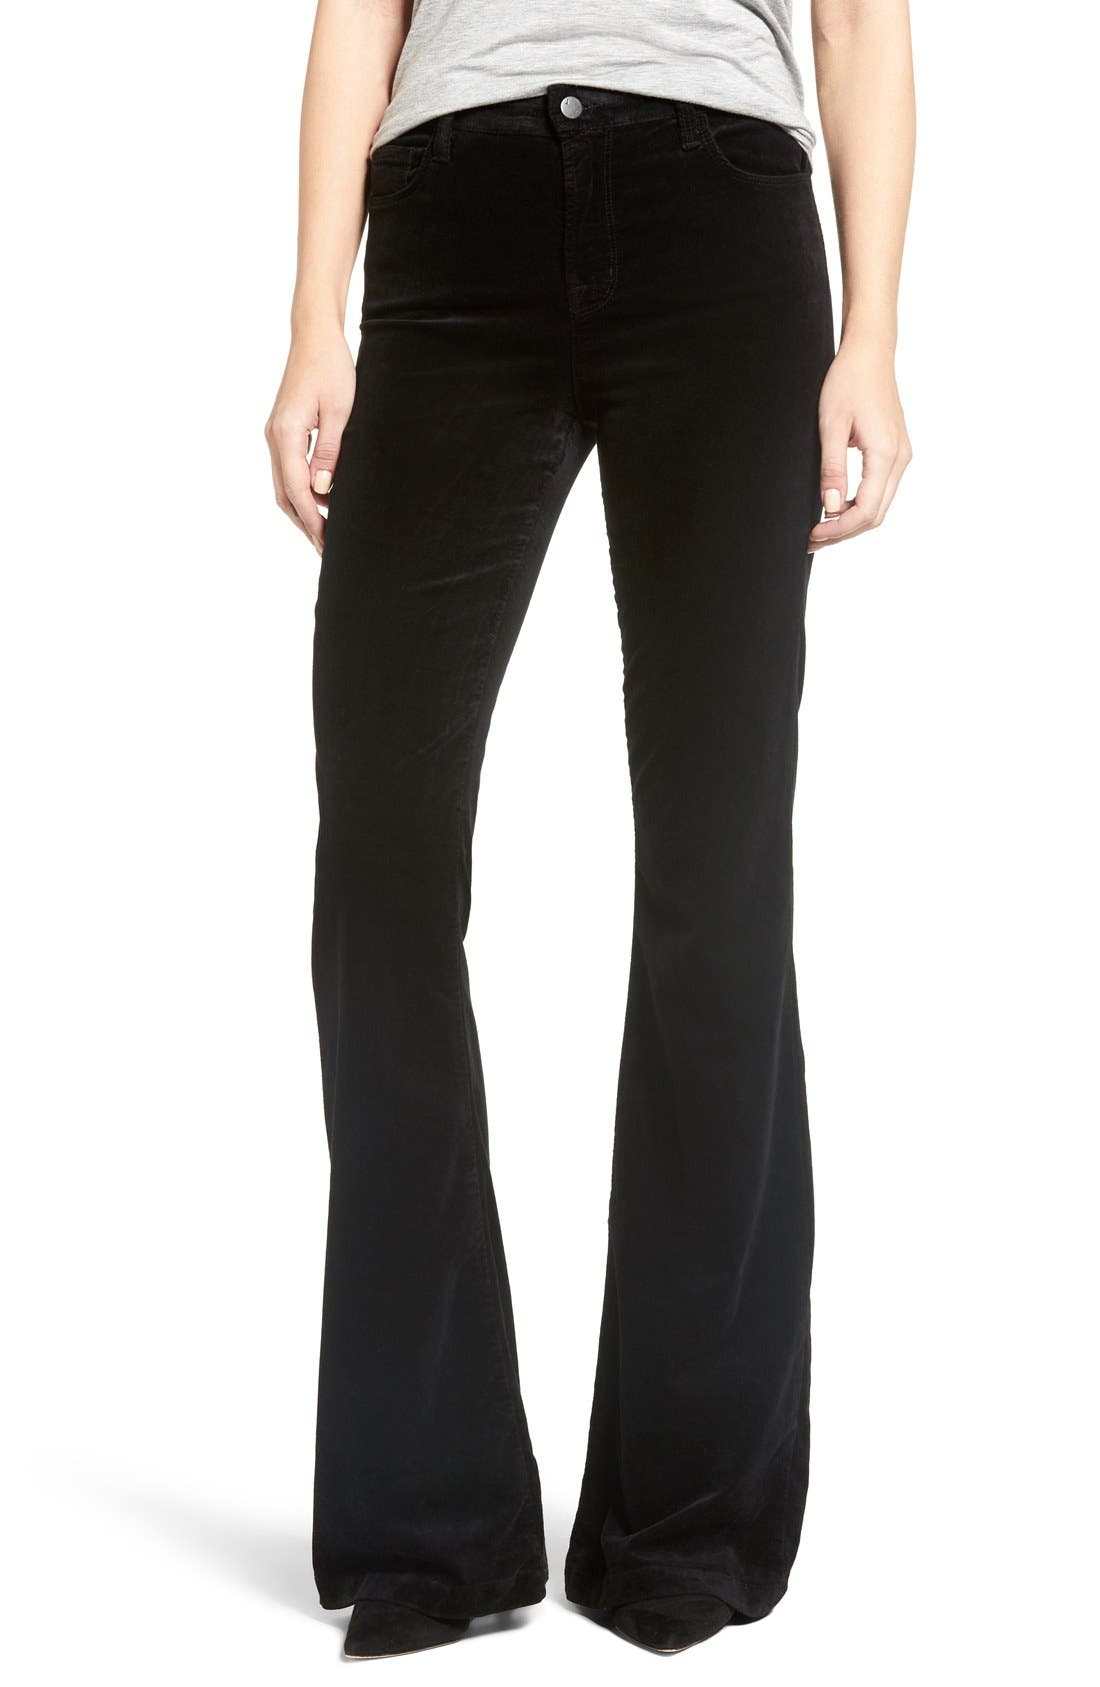 Alternate Image 1 Selected - J Brand 'Maria' Velvet Flare Pants